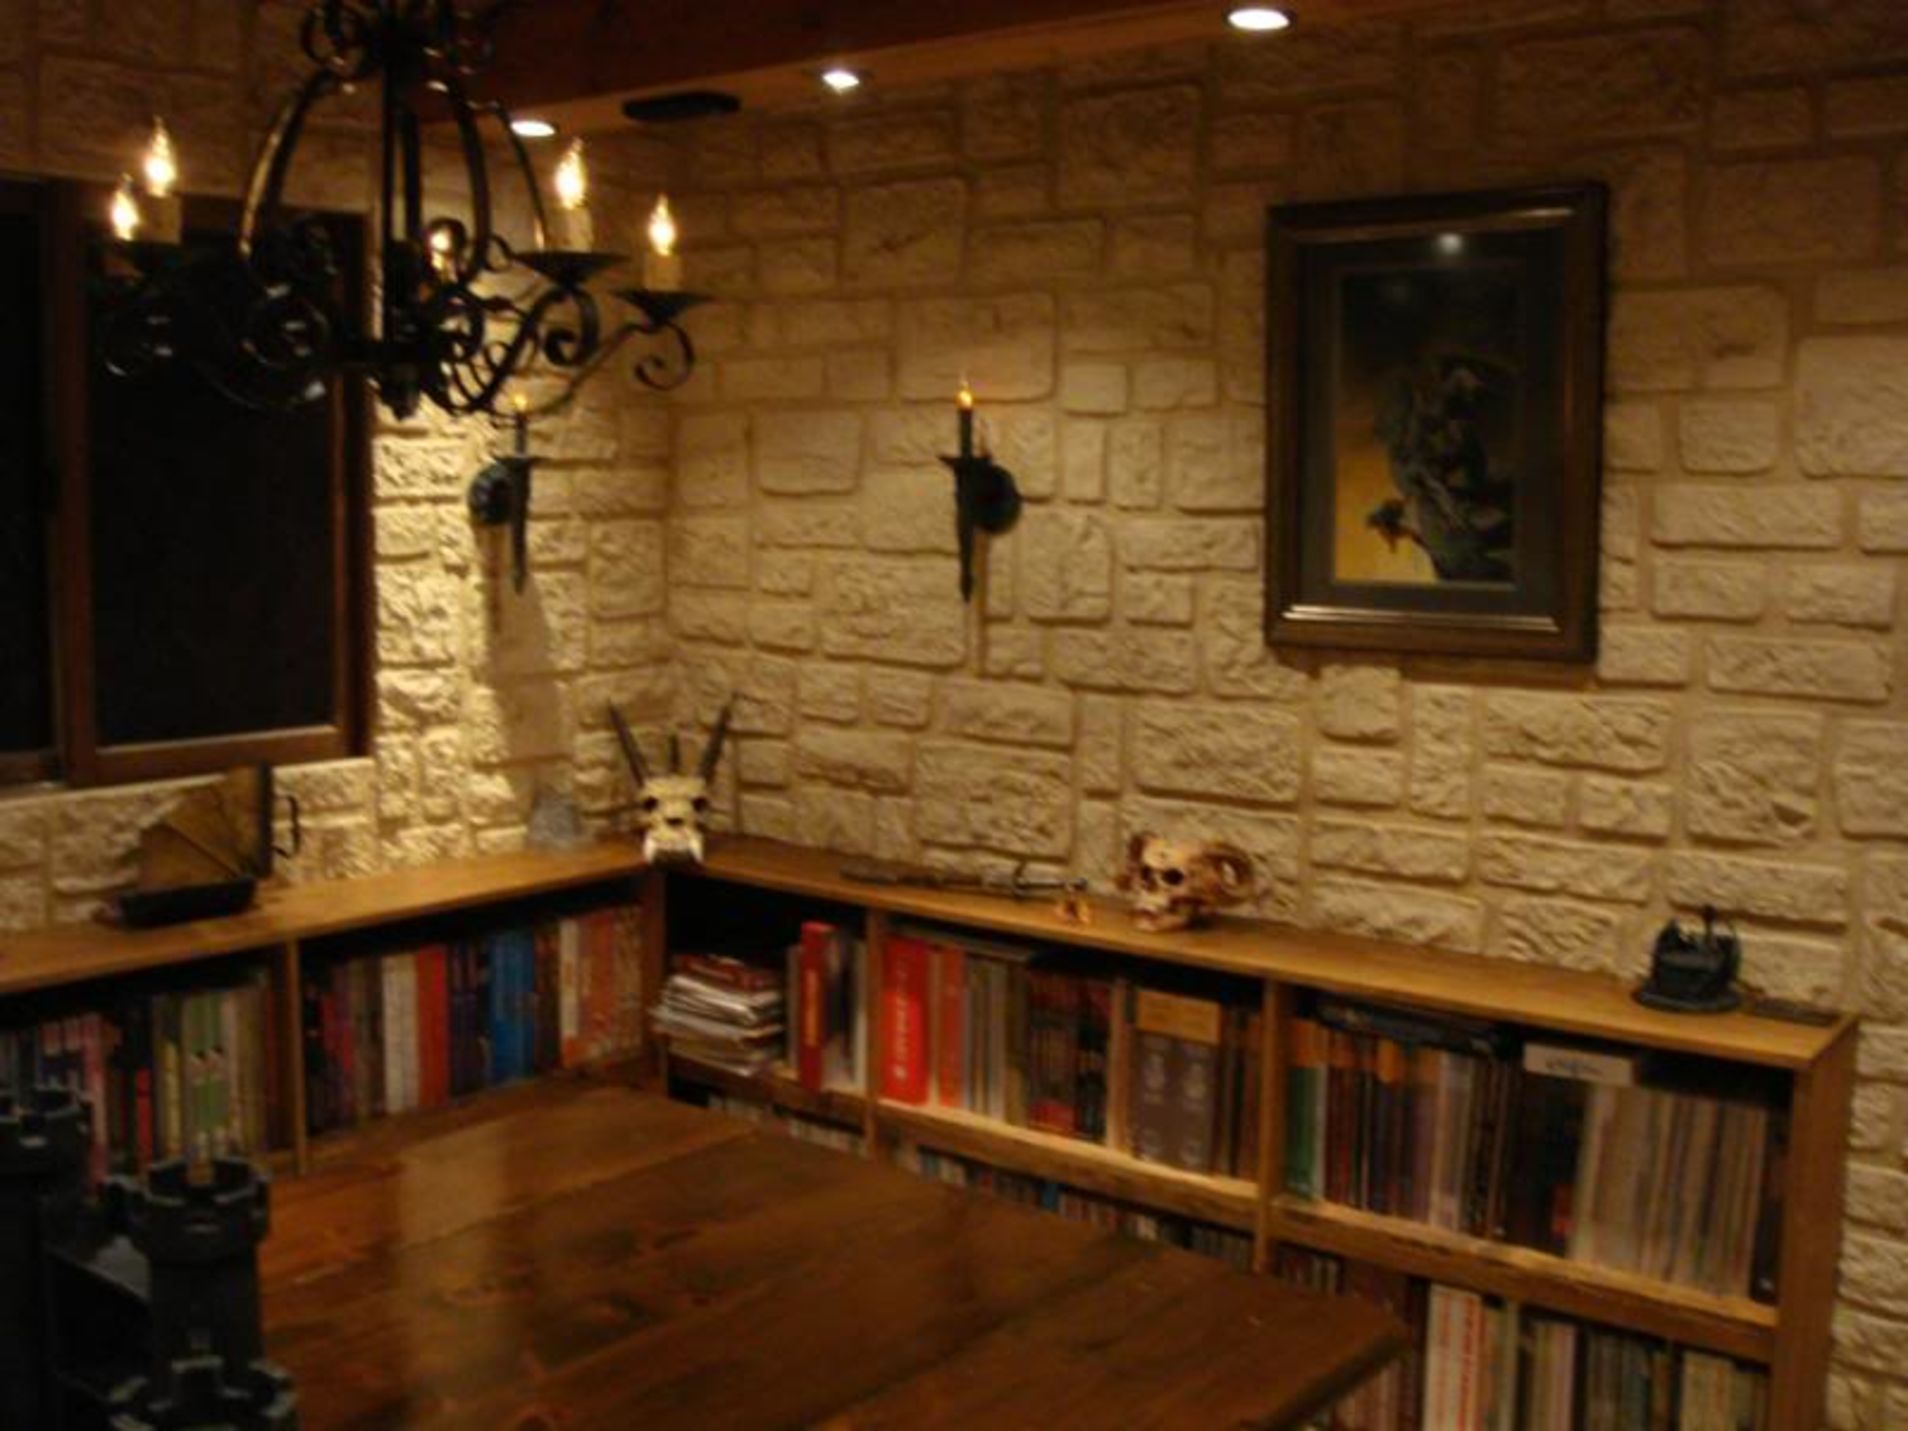 The World's Greatest Dungeons & Dragons Room images